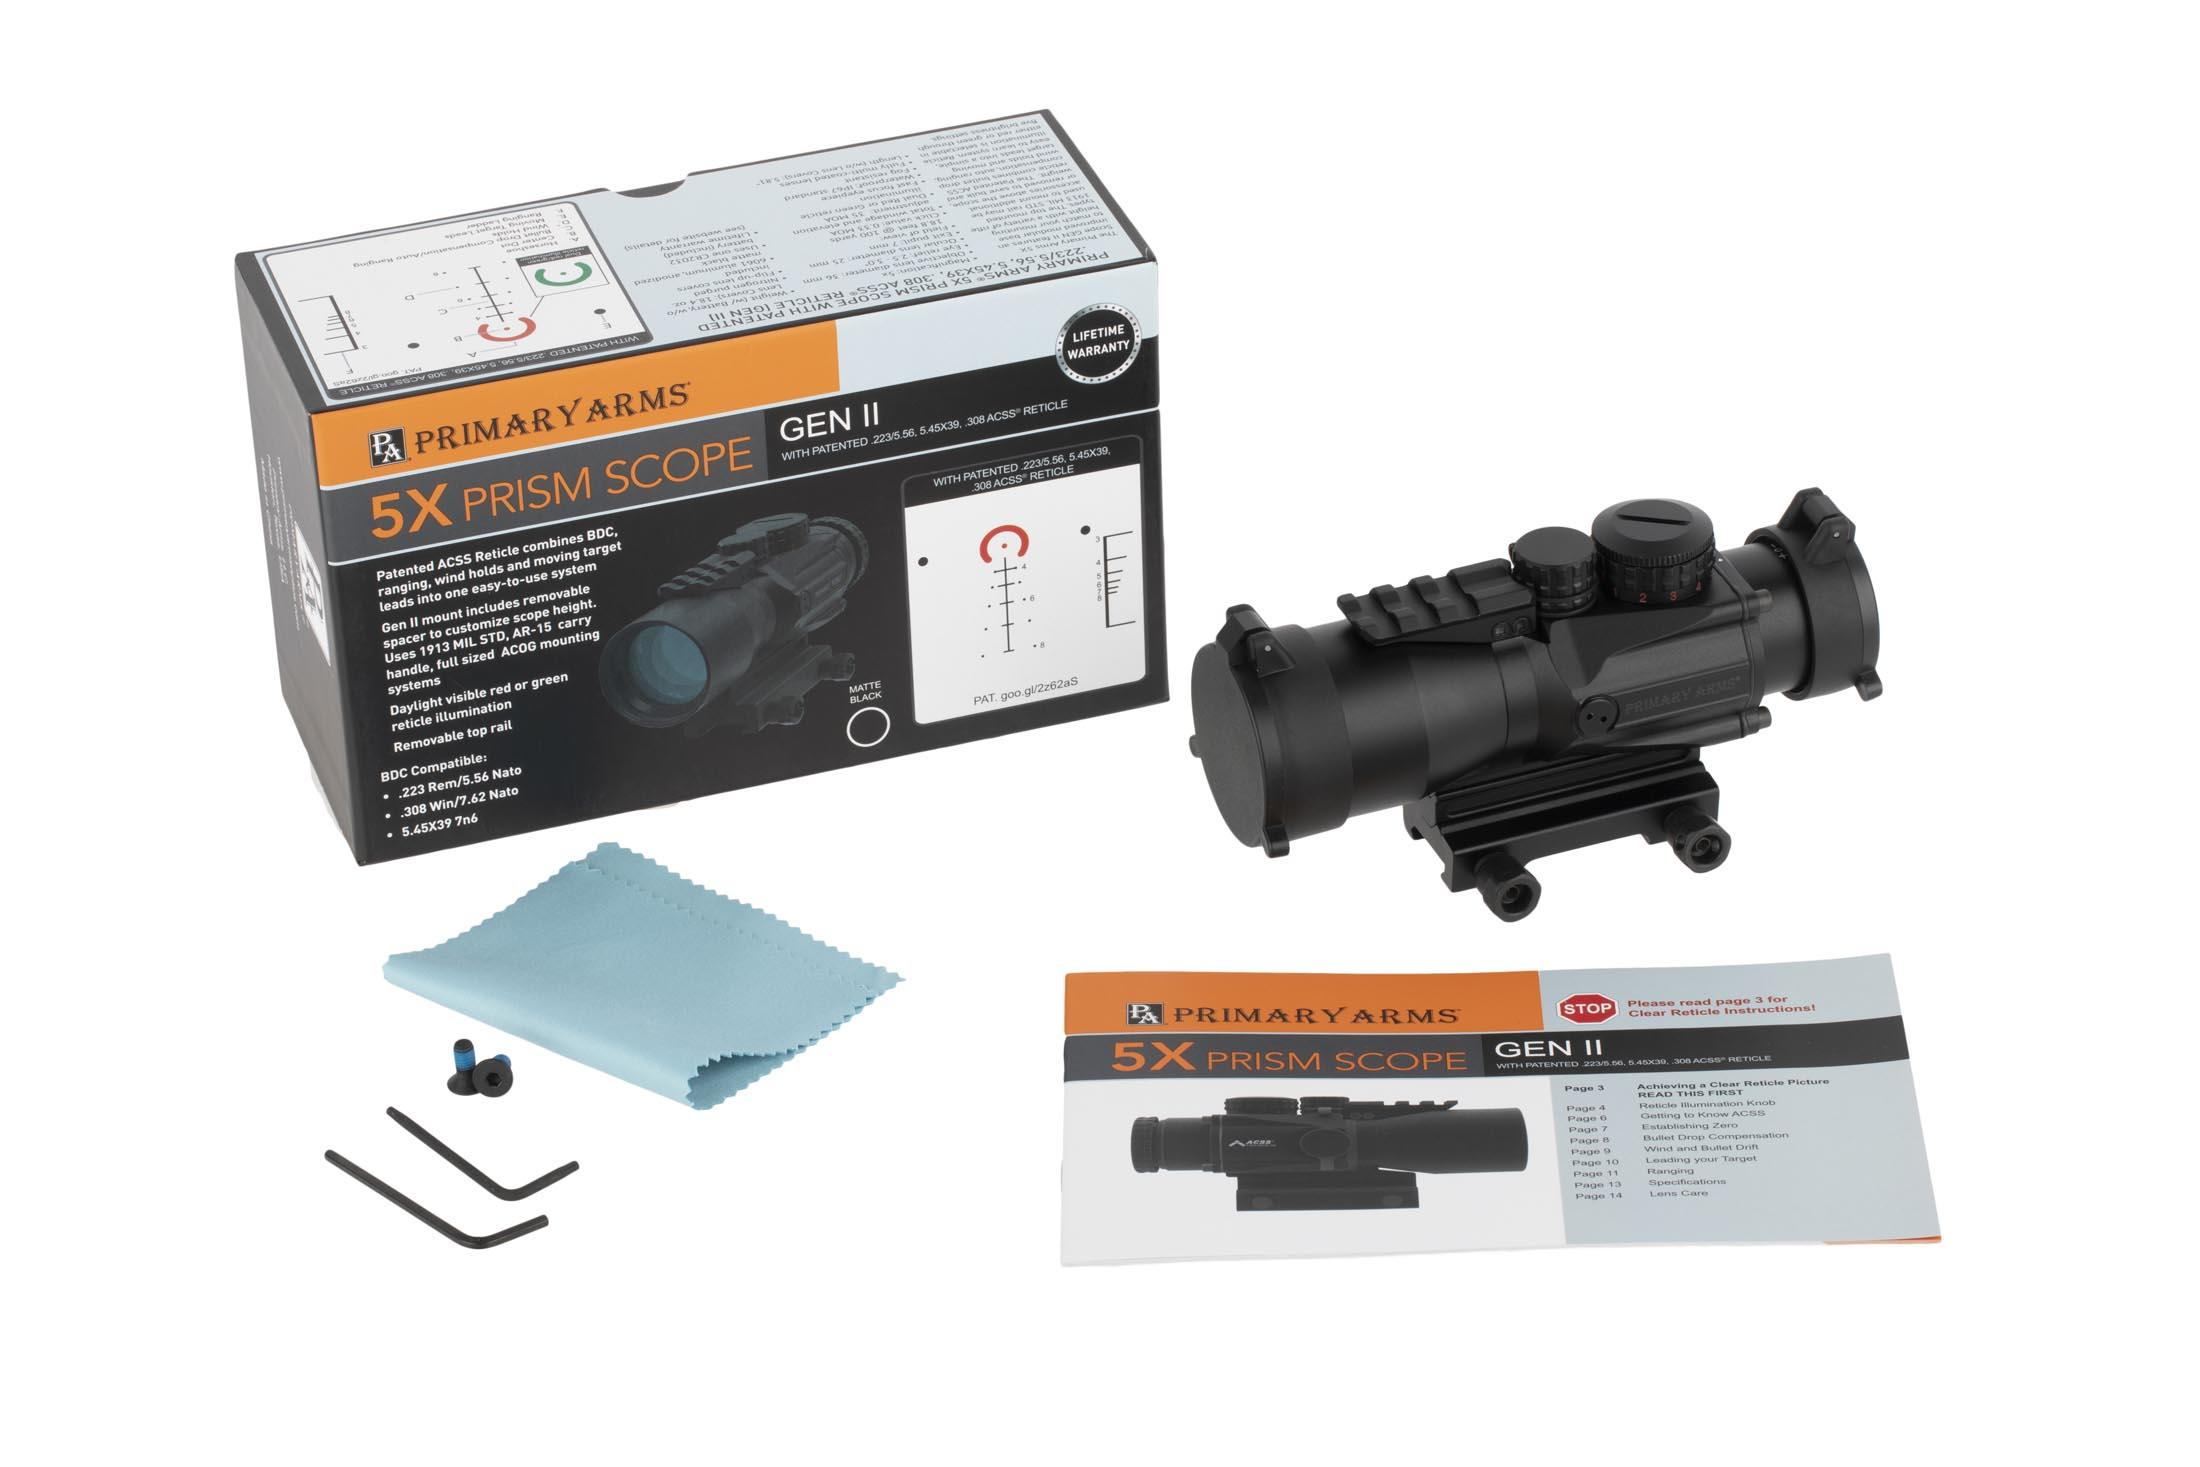 Primary Arms Silver Series Compact 5x36 Gen II Prism Scope -  ACSS-5 56/5 45/ 308